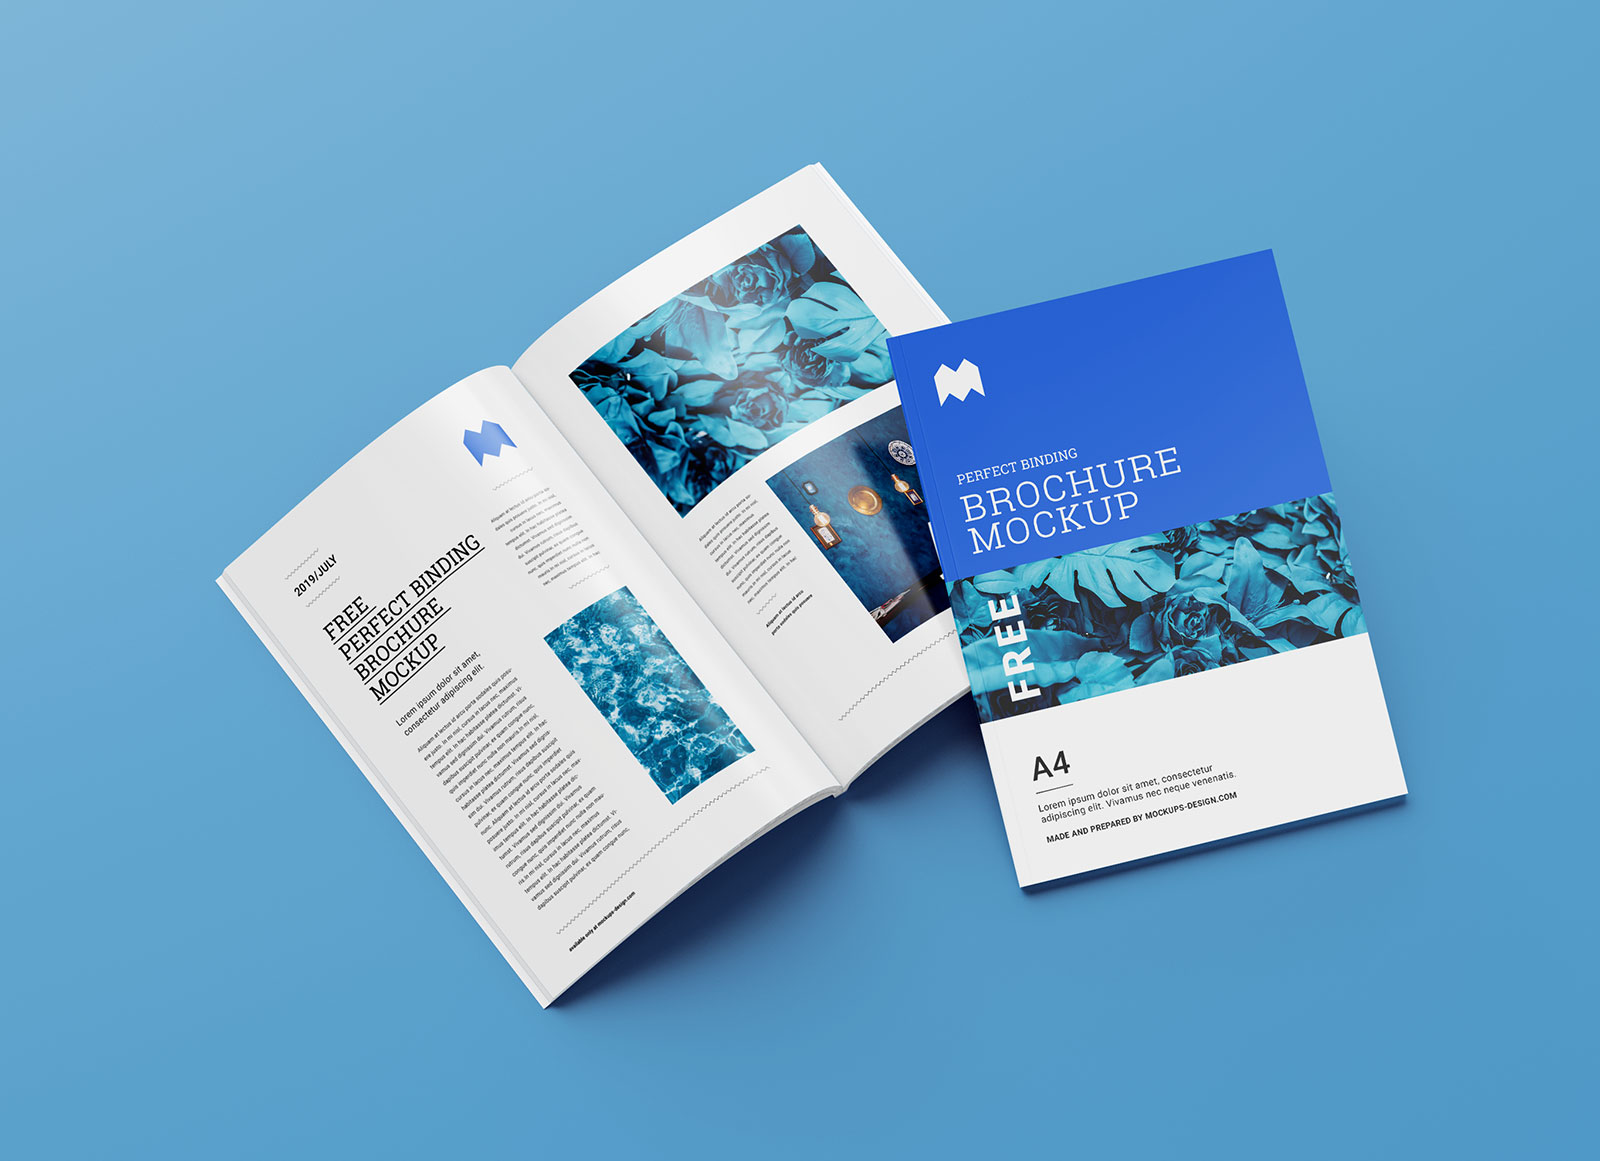 Download Free A4 Magazine / Brochure Book Mockup Set (6 PSD Files ...